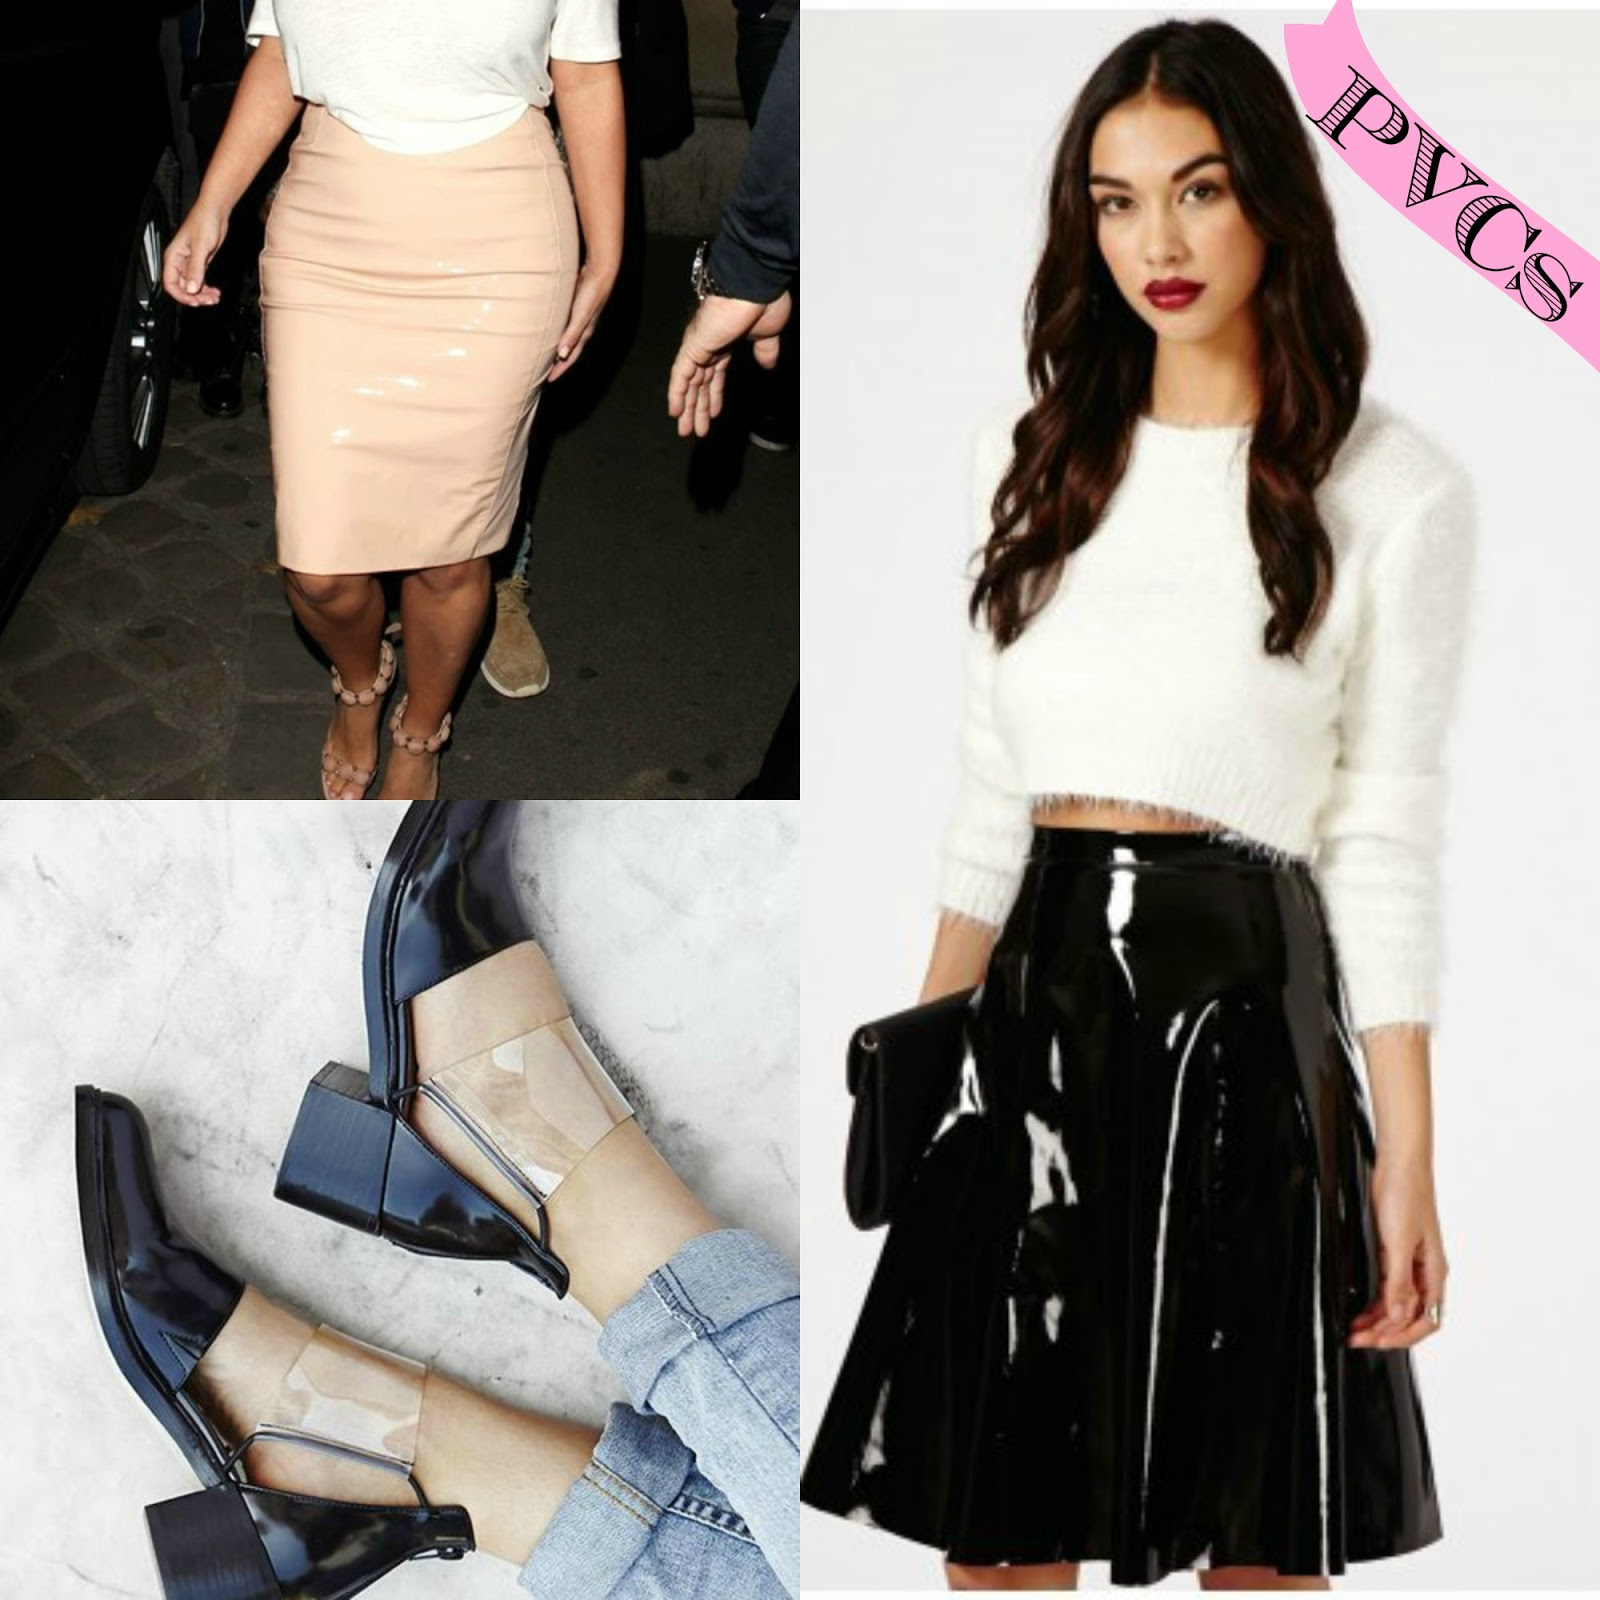 Spring 2014 fashion trends pvc skirt